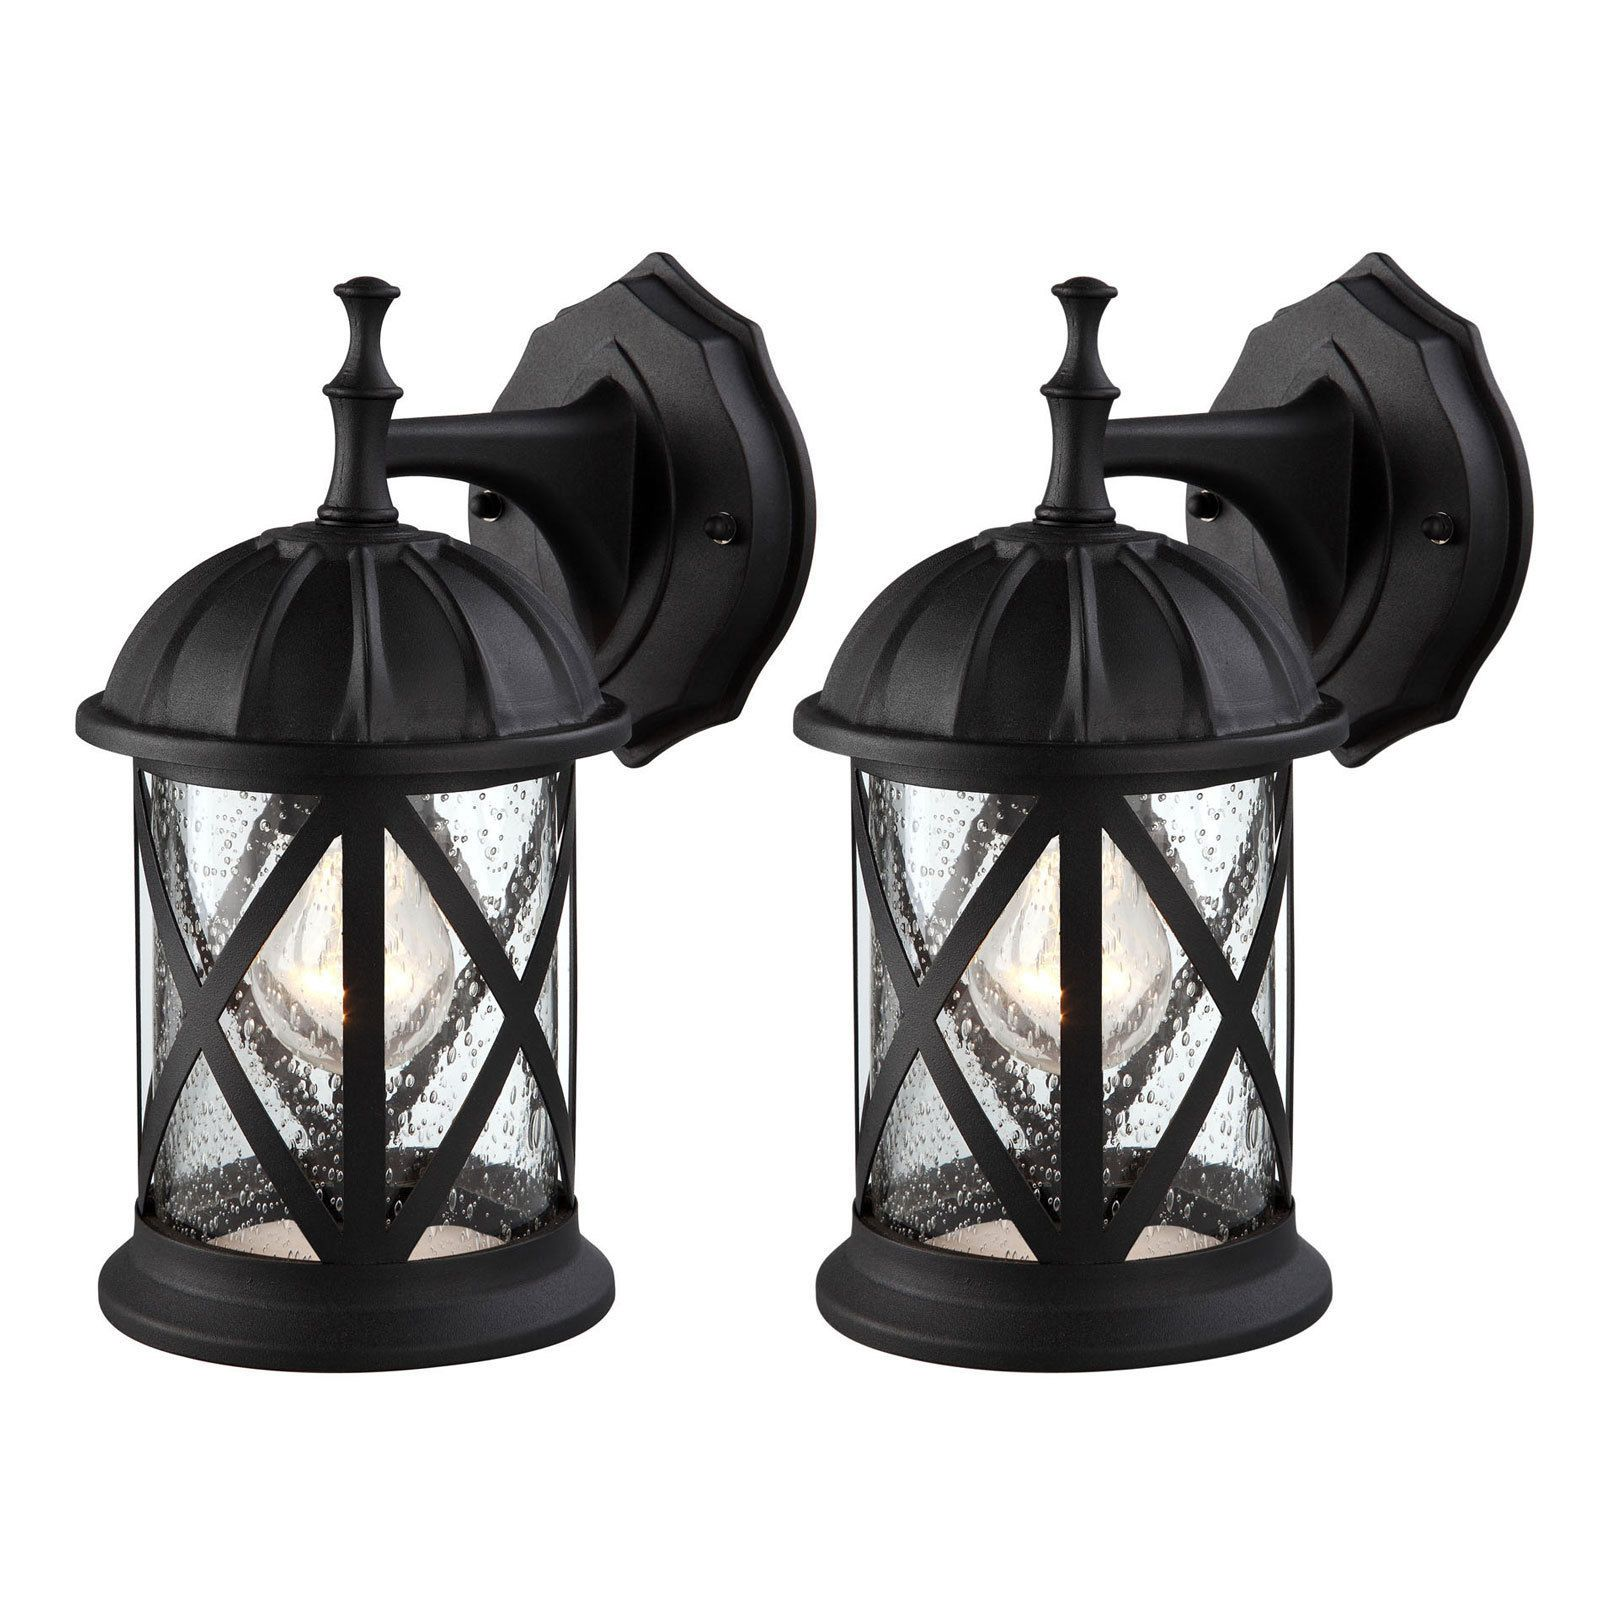 Outdoor Wall And Porch Lights 94939: Outdoor Exterior Wall Lantern Light  Fixture Sconce Twin Pack